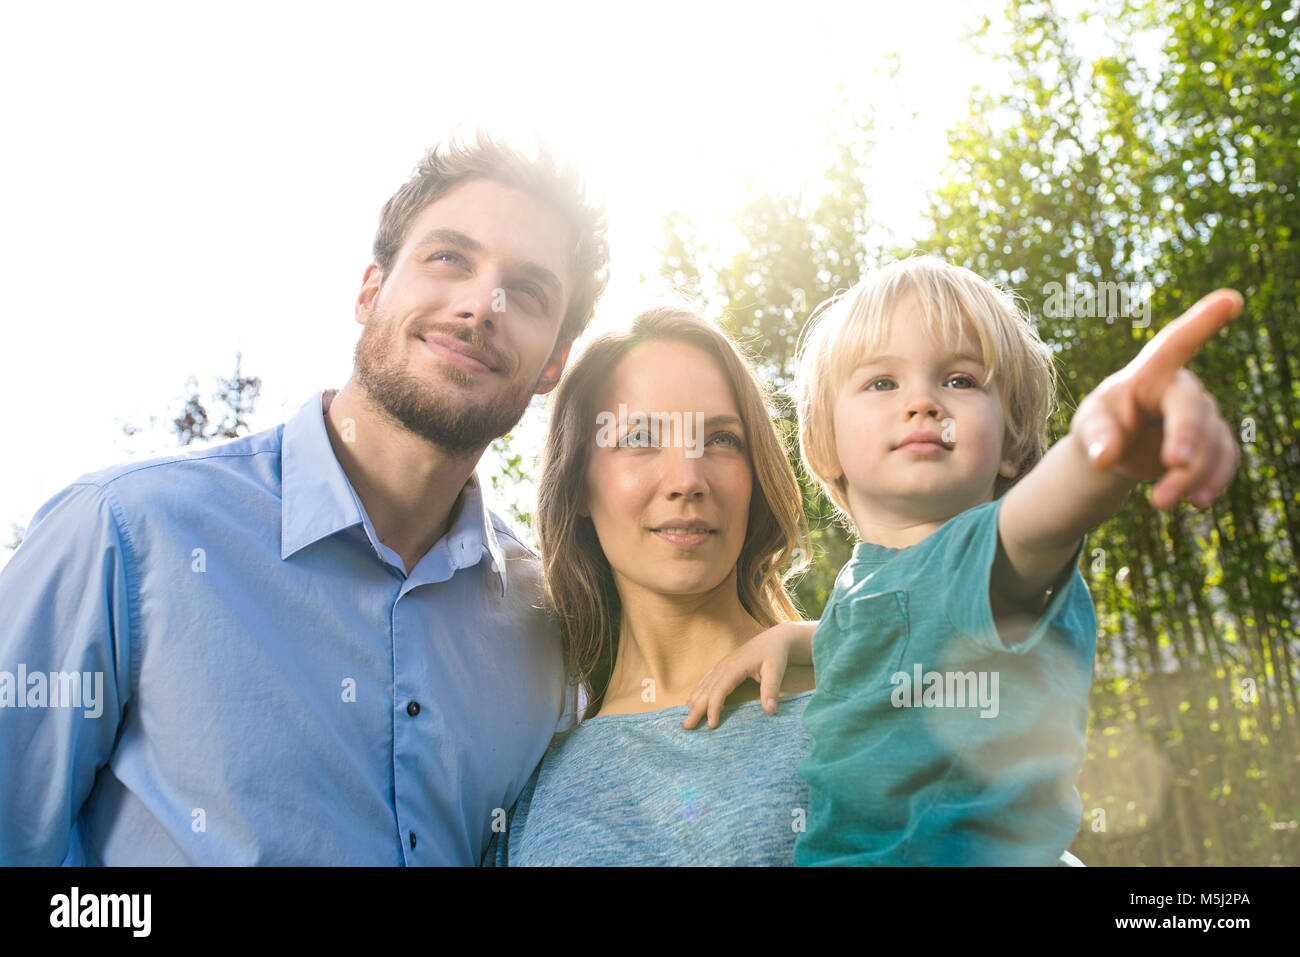 Smiling family in front of bamboo plants with son pointing his finger - Stock Image